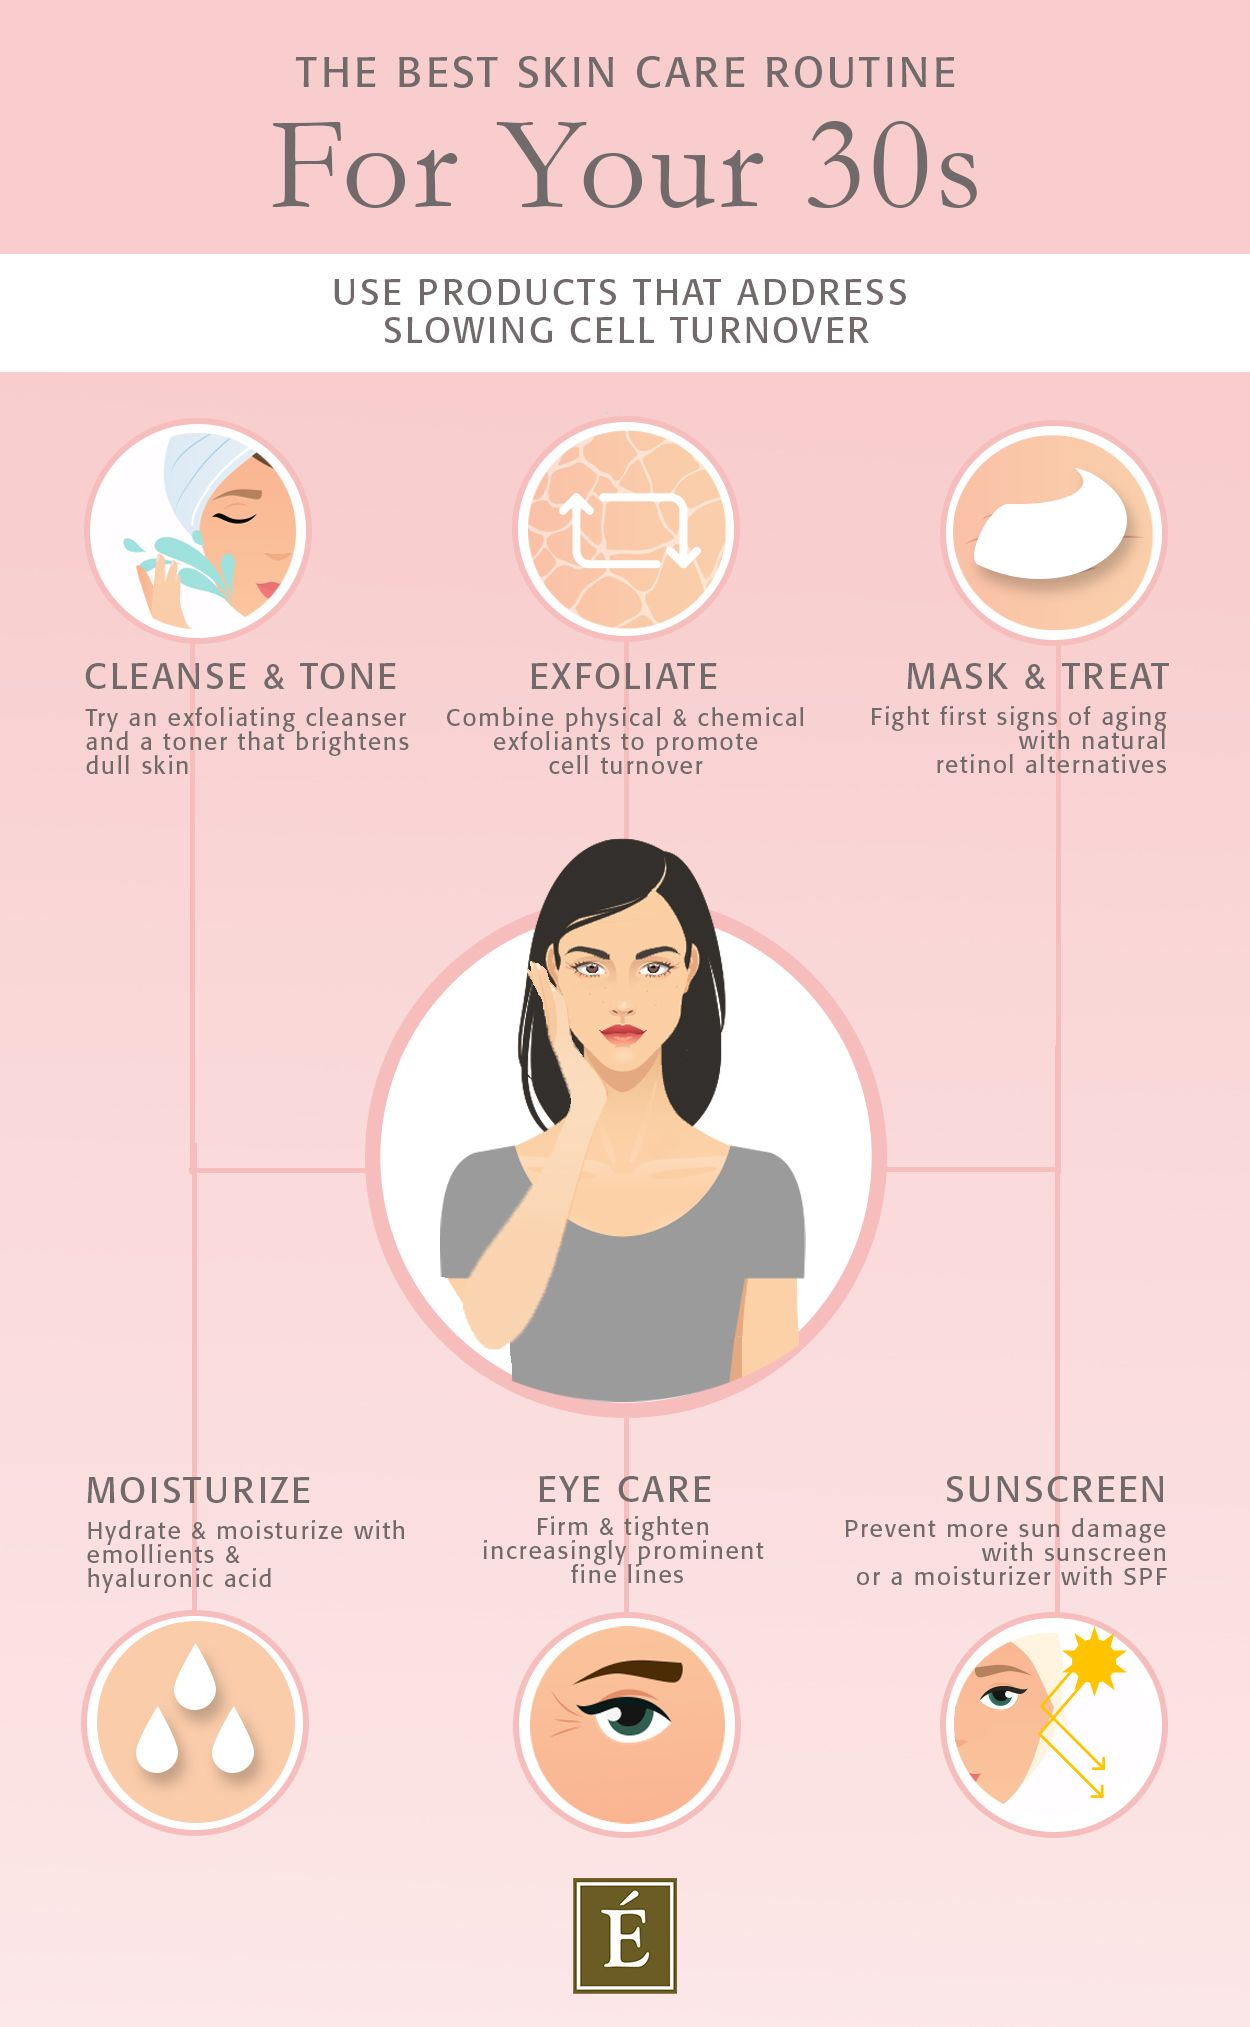 Best Skin Care Routine For 30s Infographic